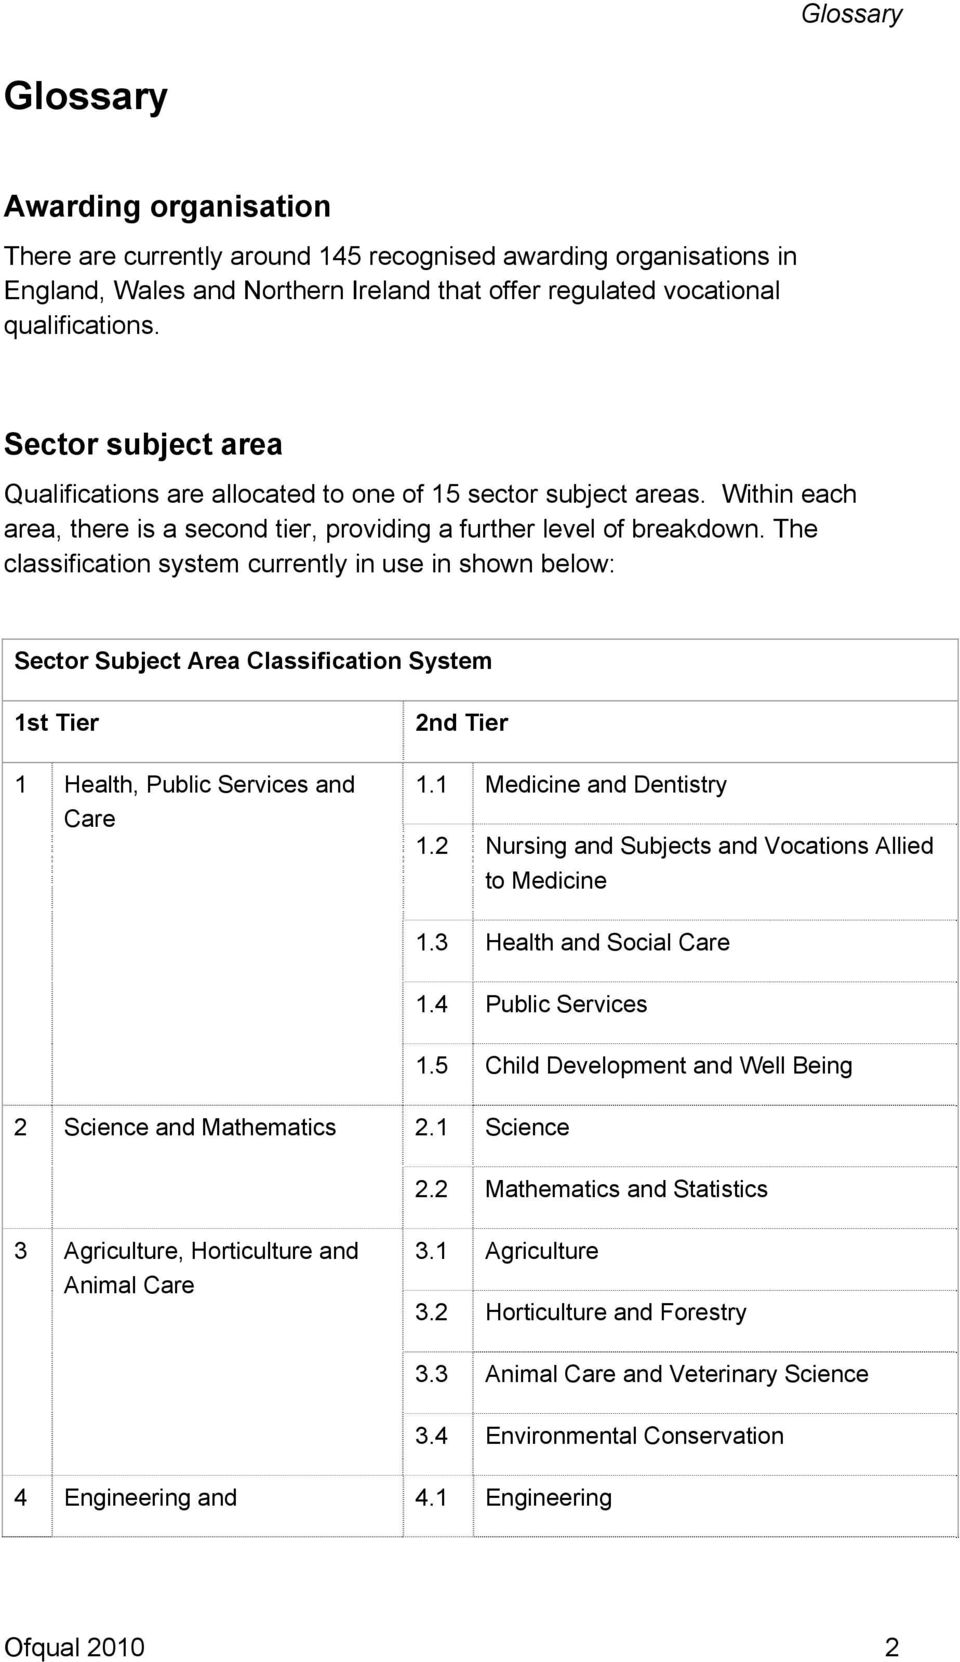 The classification system currently in use in shown below: Sector Subject Area Classification System 1st Tier 1 Health, Public Services and Care 2nd Tier 1.1 Medicine and Dentistry 1.